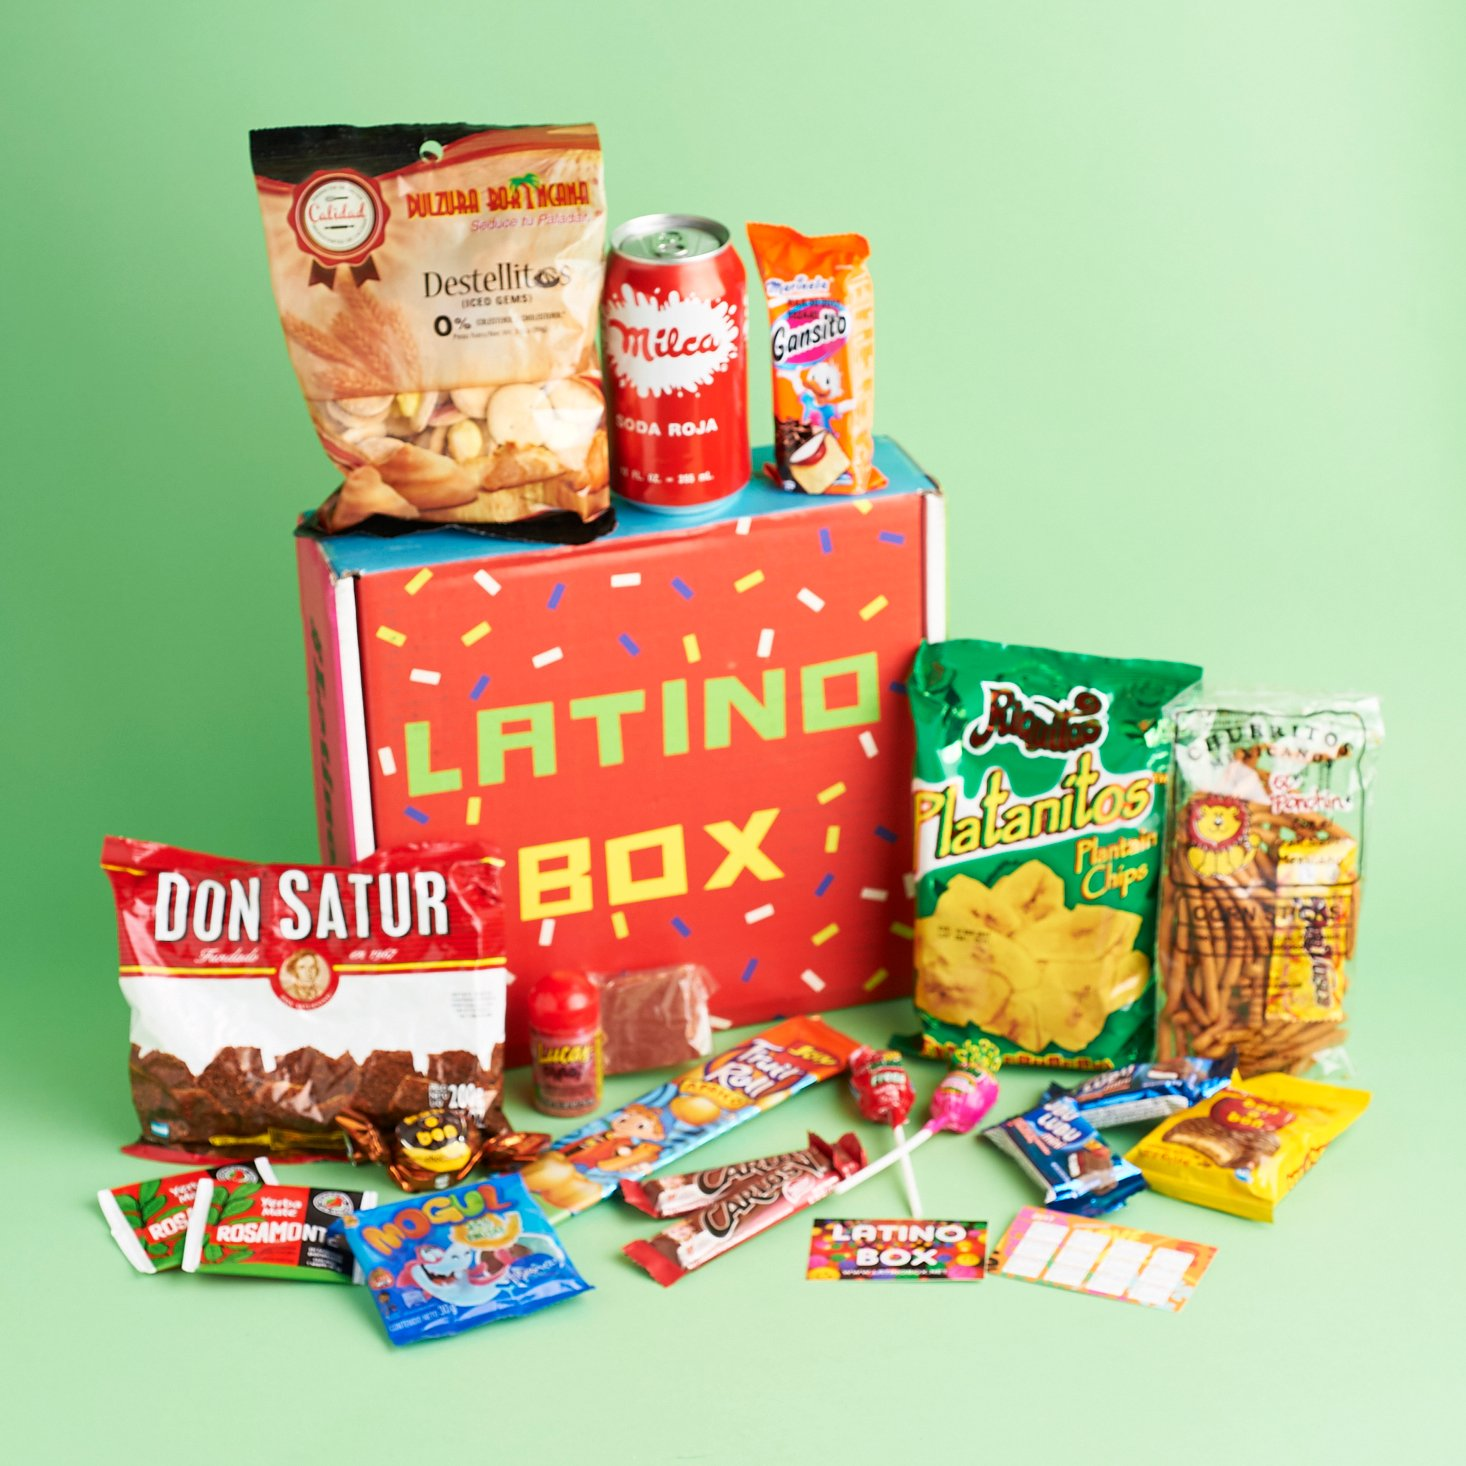 Check out our review of the February 2017 Latino Box!